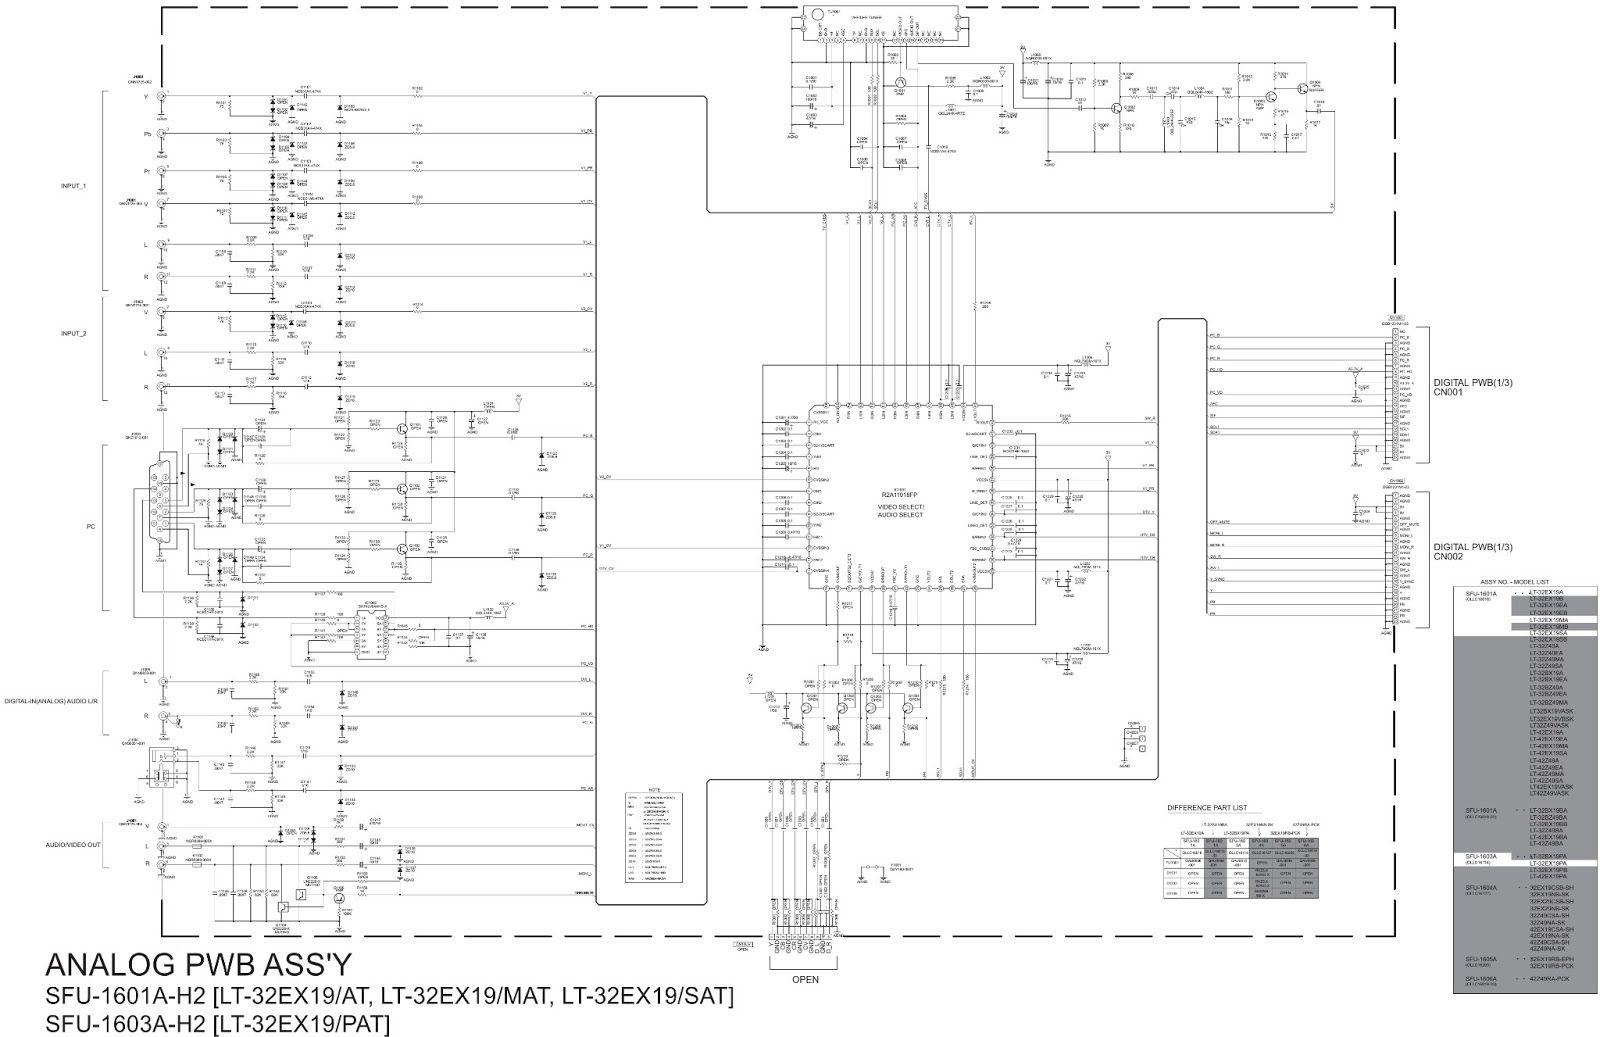 lt-32ex29 - lt-32ex19 - jvc lcd tv - main power supply - schematic  circuit diagram